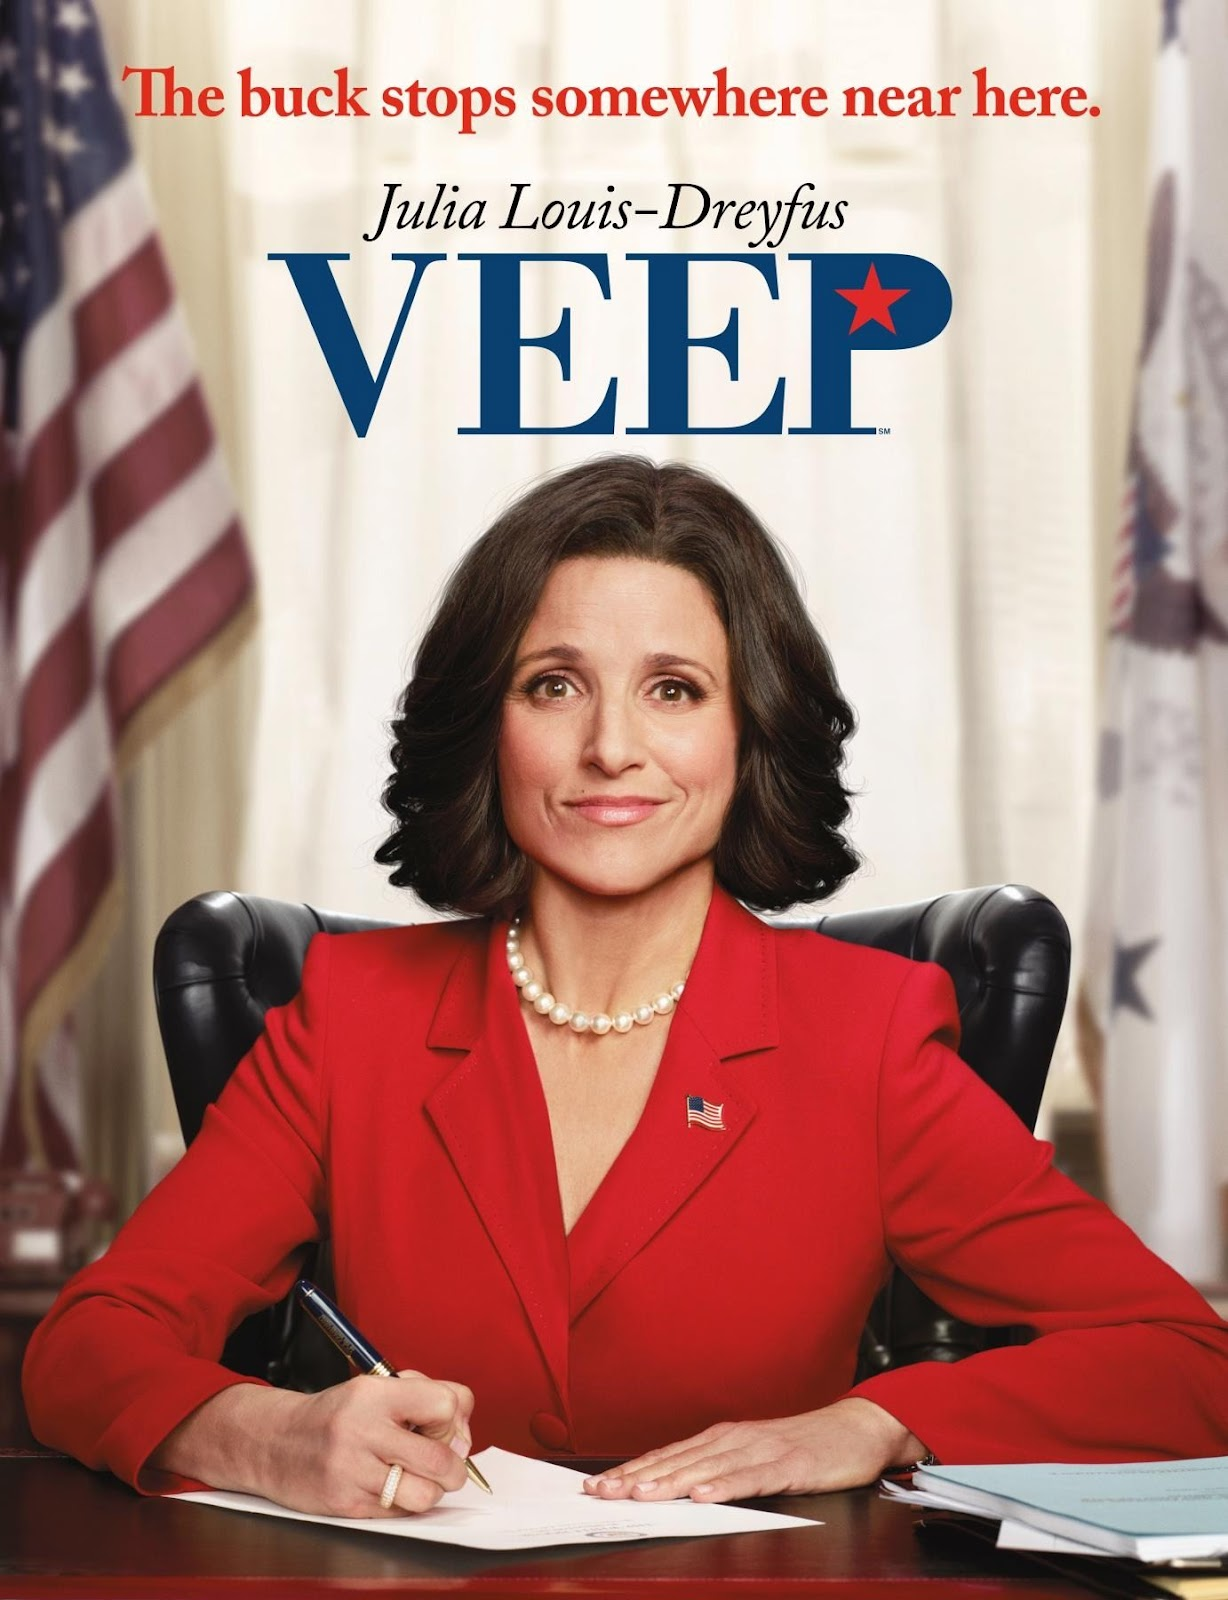 Veep, Photo Credit: www.somethingoneverything.com